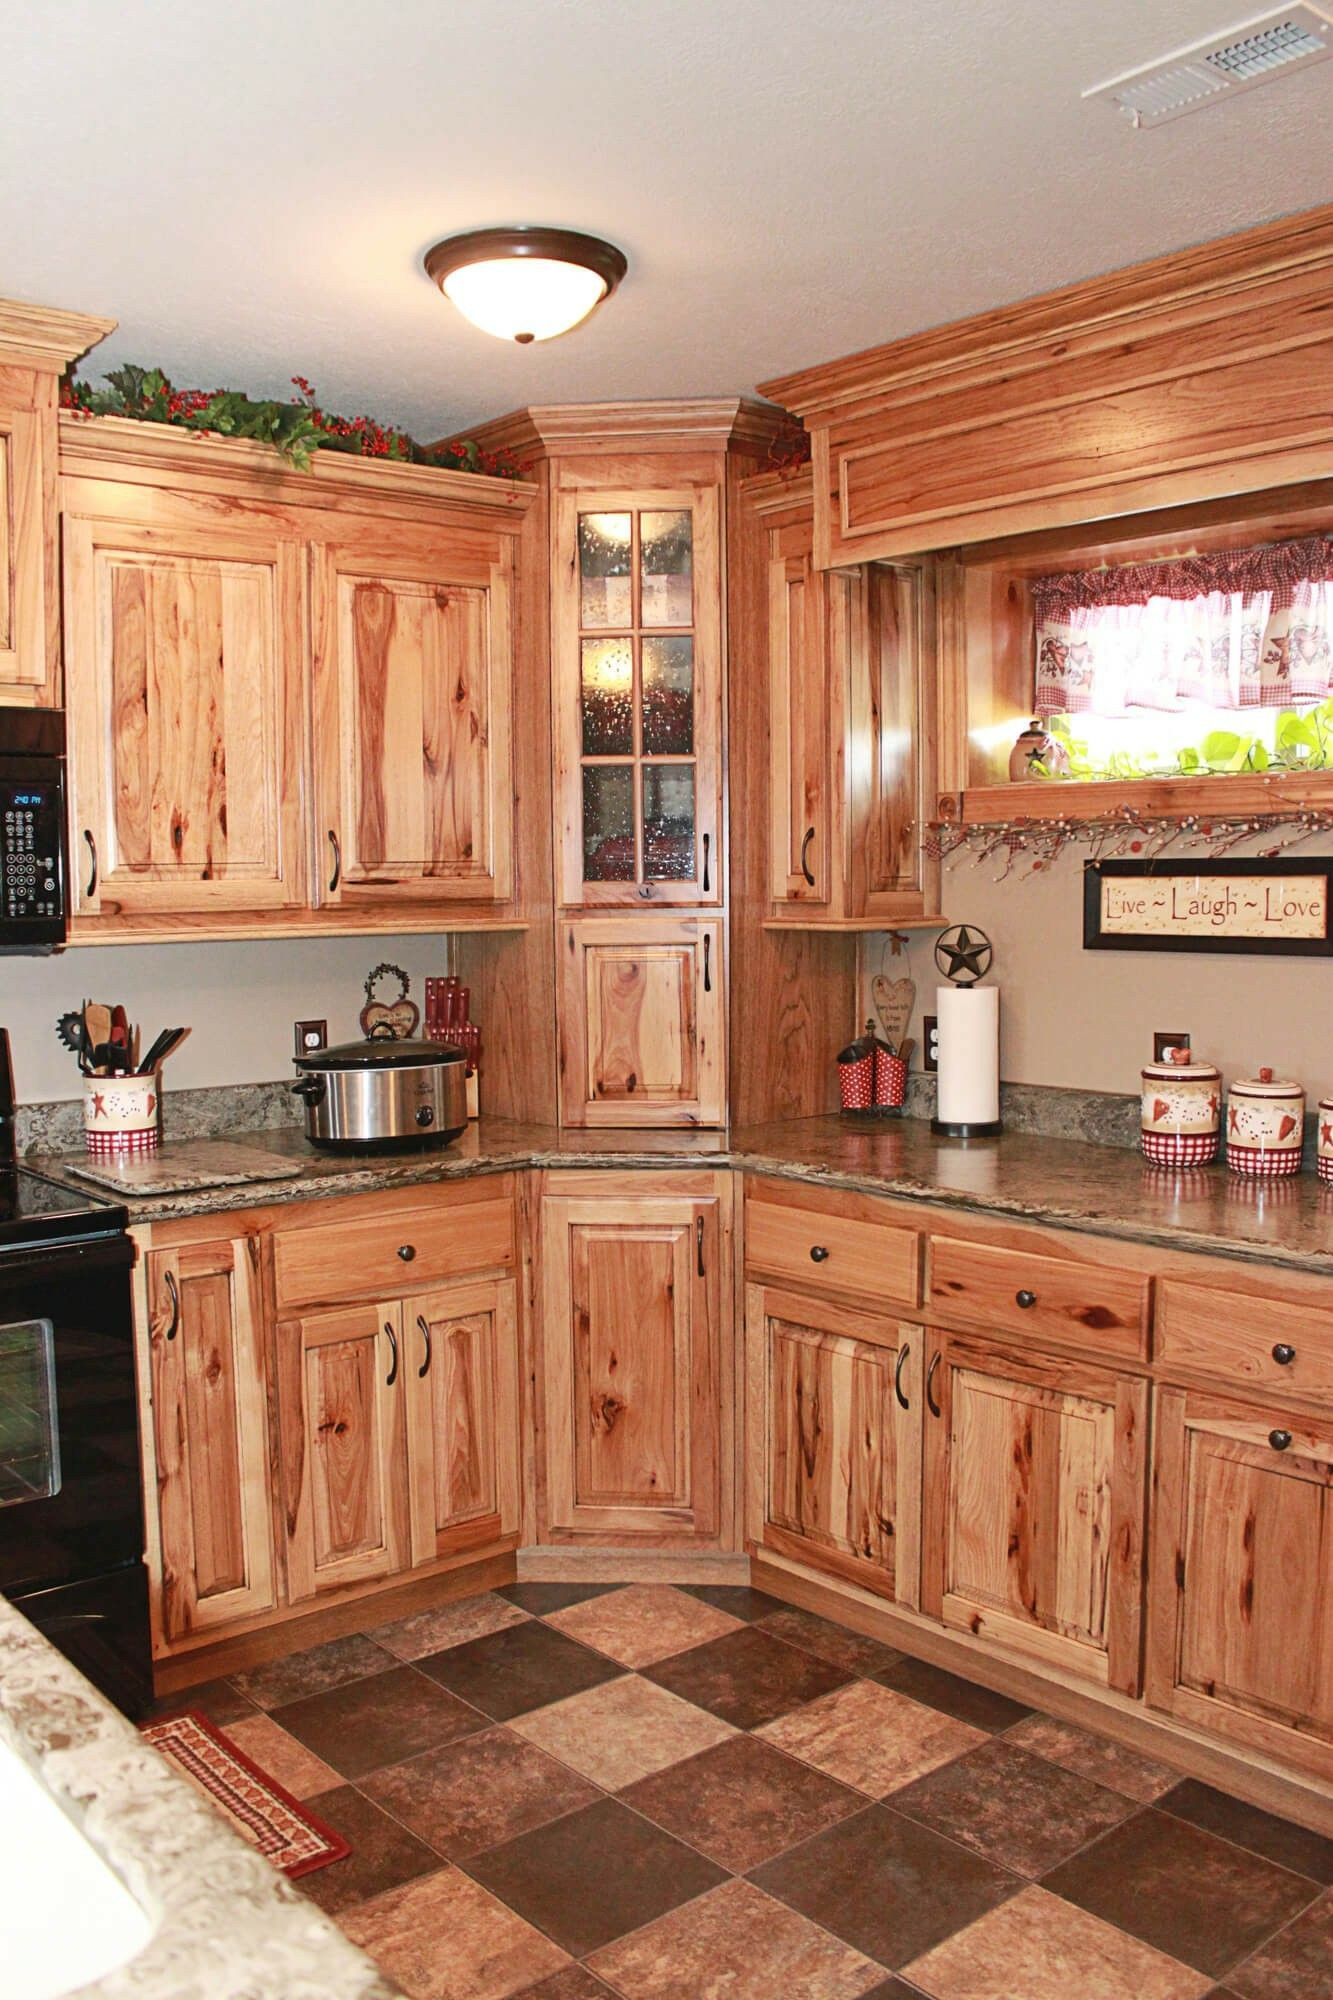 Hickory Kitchen Cabinets Hickory Kitchen Cabinets Kitchen Cabinet Styles Farmhouse Style Kitchen Cabinets